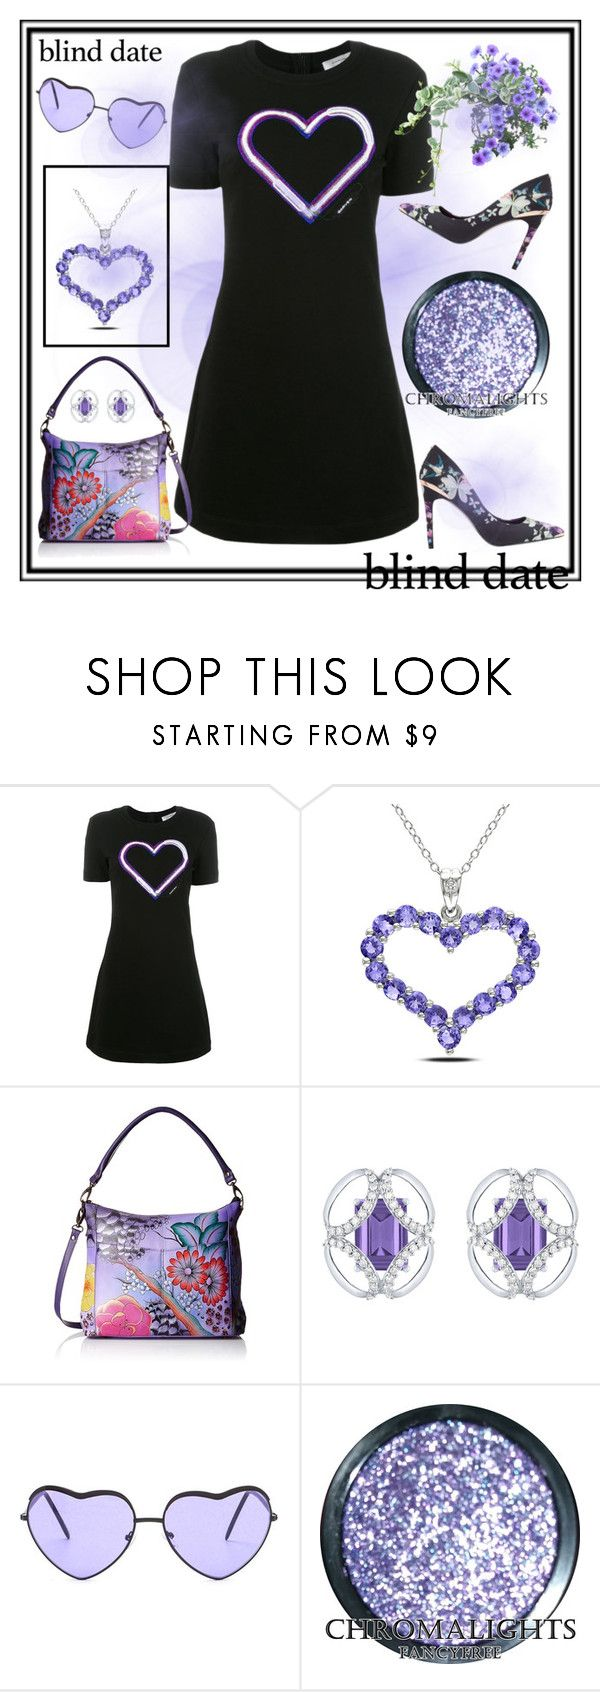 """""""Dress to impress:Blind date"""" by amisha73 ❤ liked on Polyvore featuring Carven, Miadora, Anuschka, Arya Esha and blinddate"""